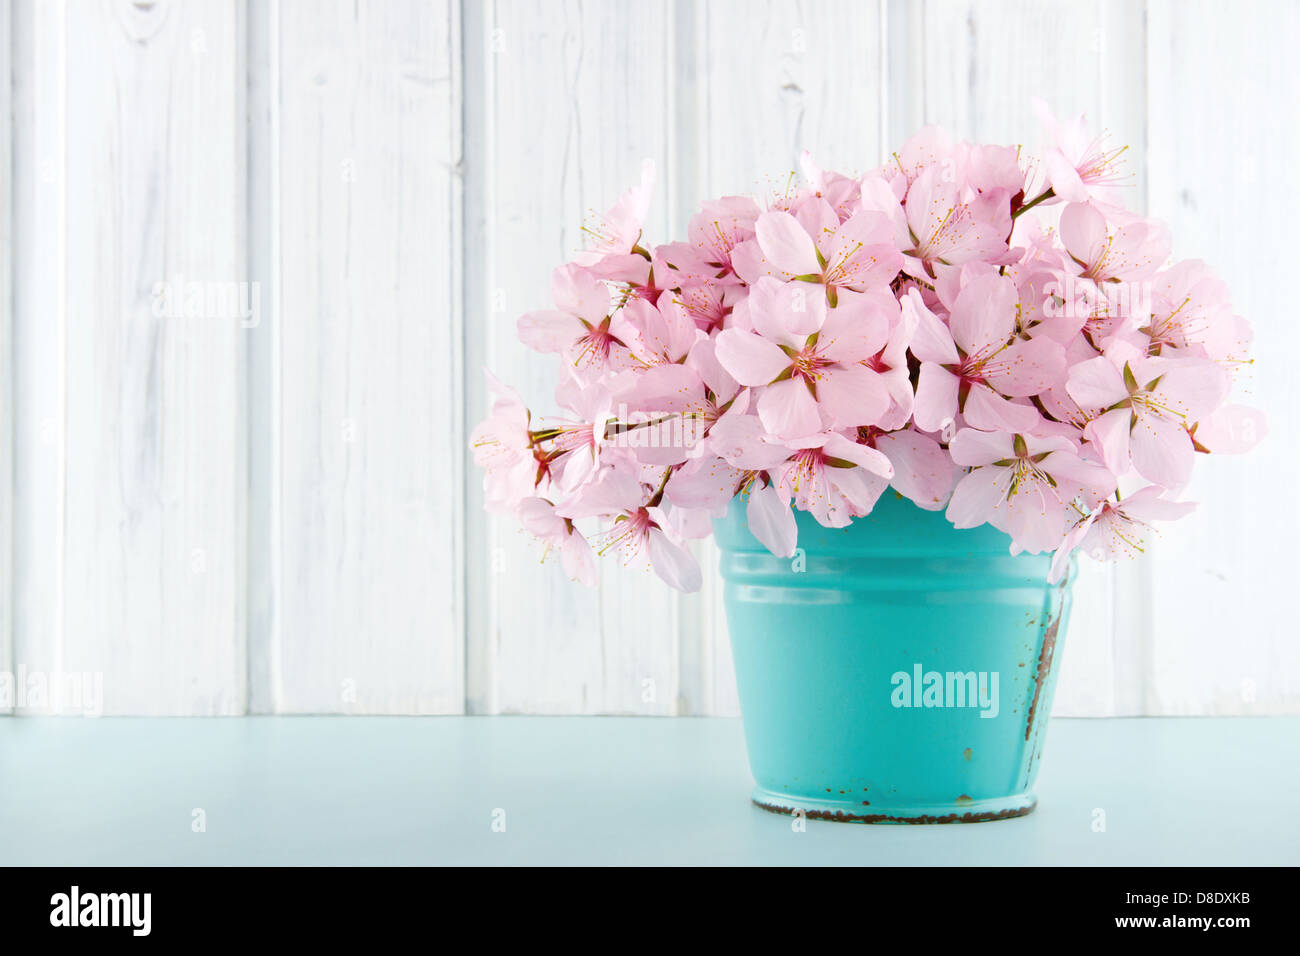 Pink cherry blossom flower bouquet on light blue vintage and white wooden background - Stock Image